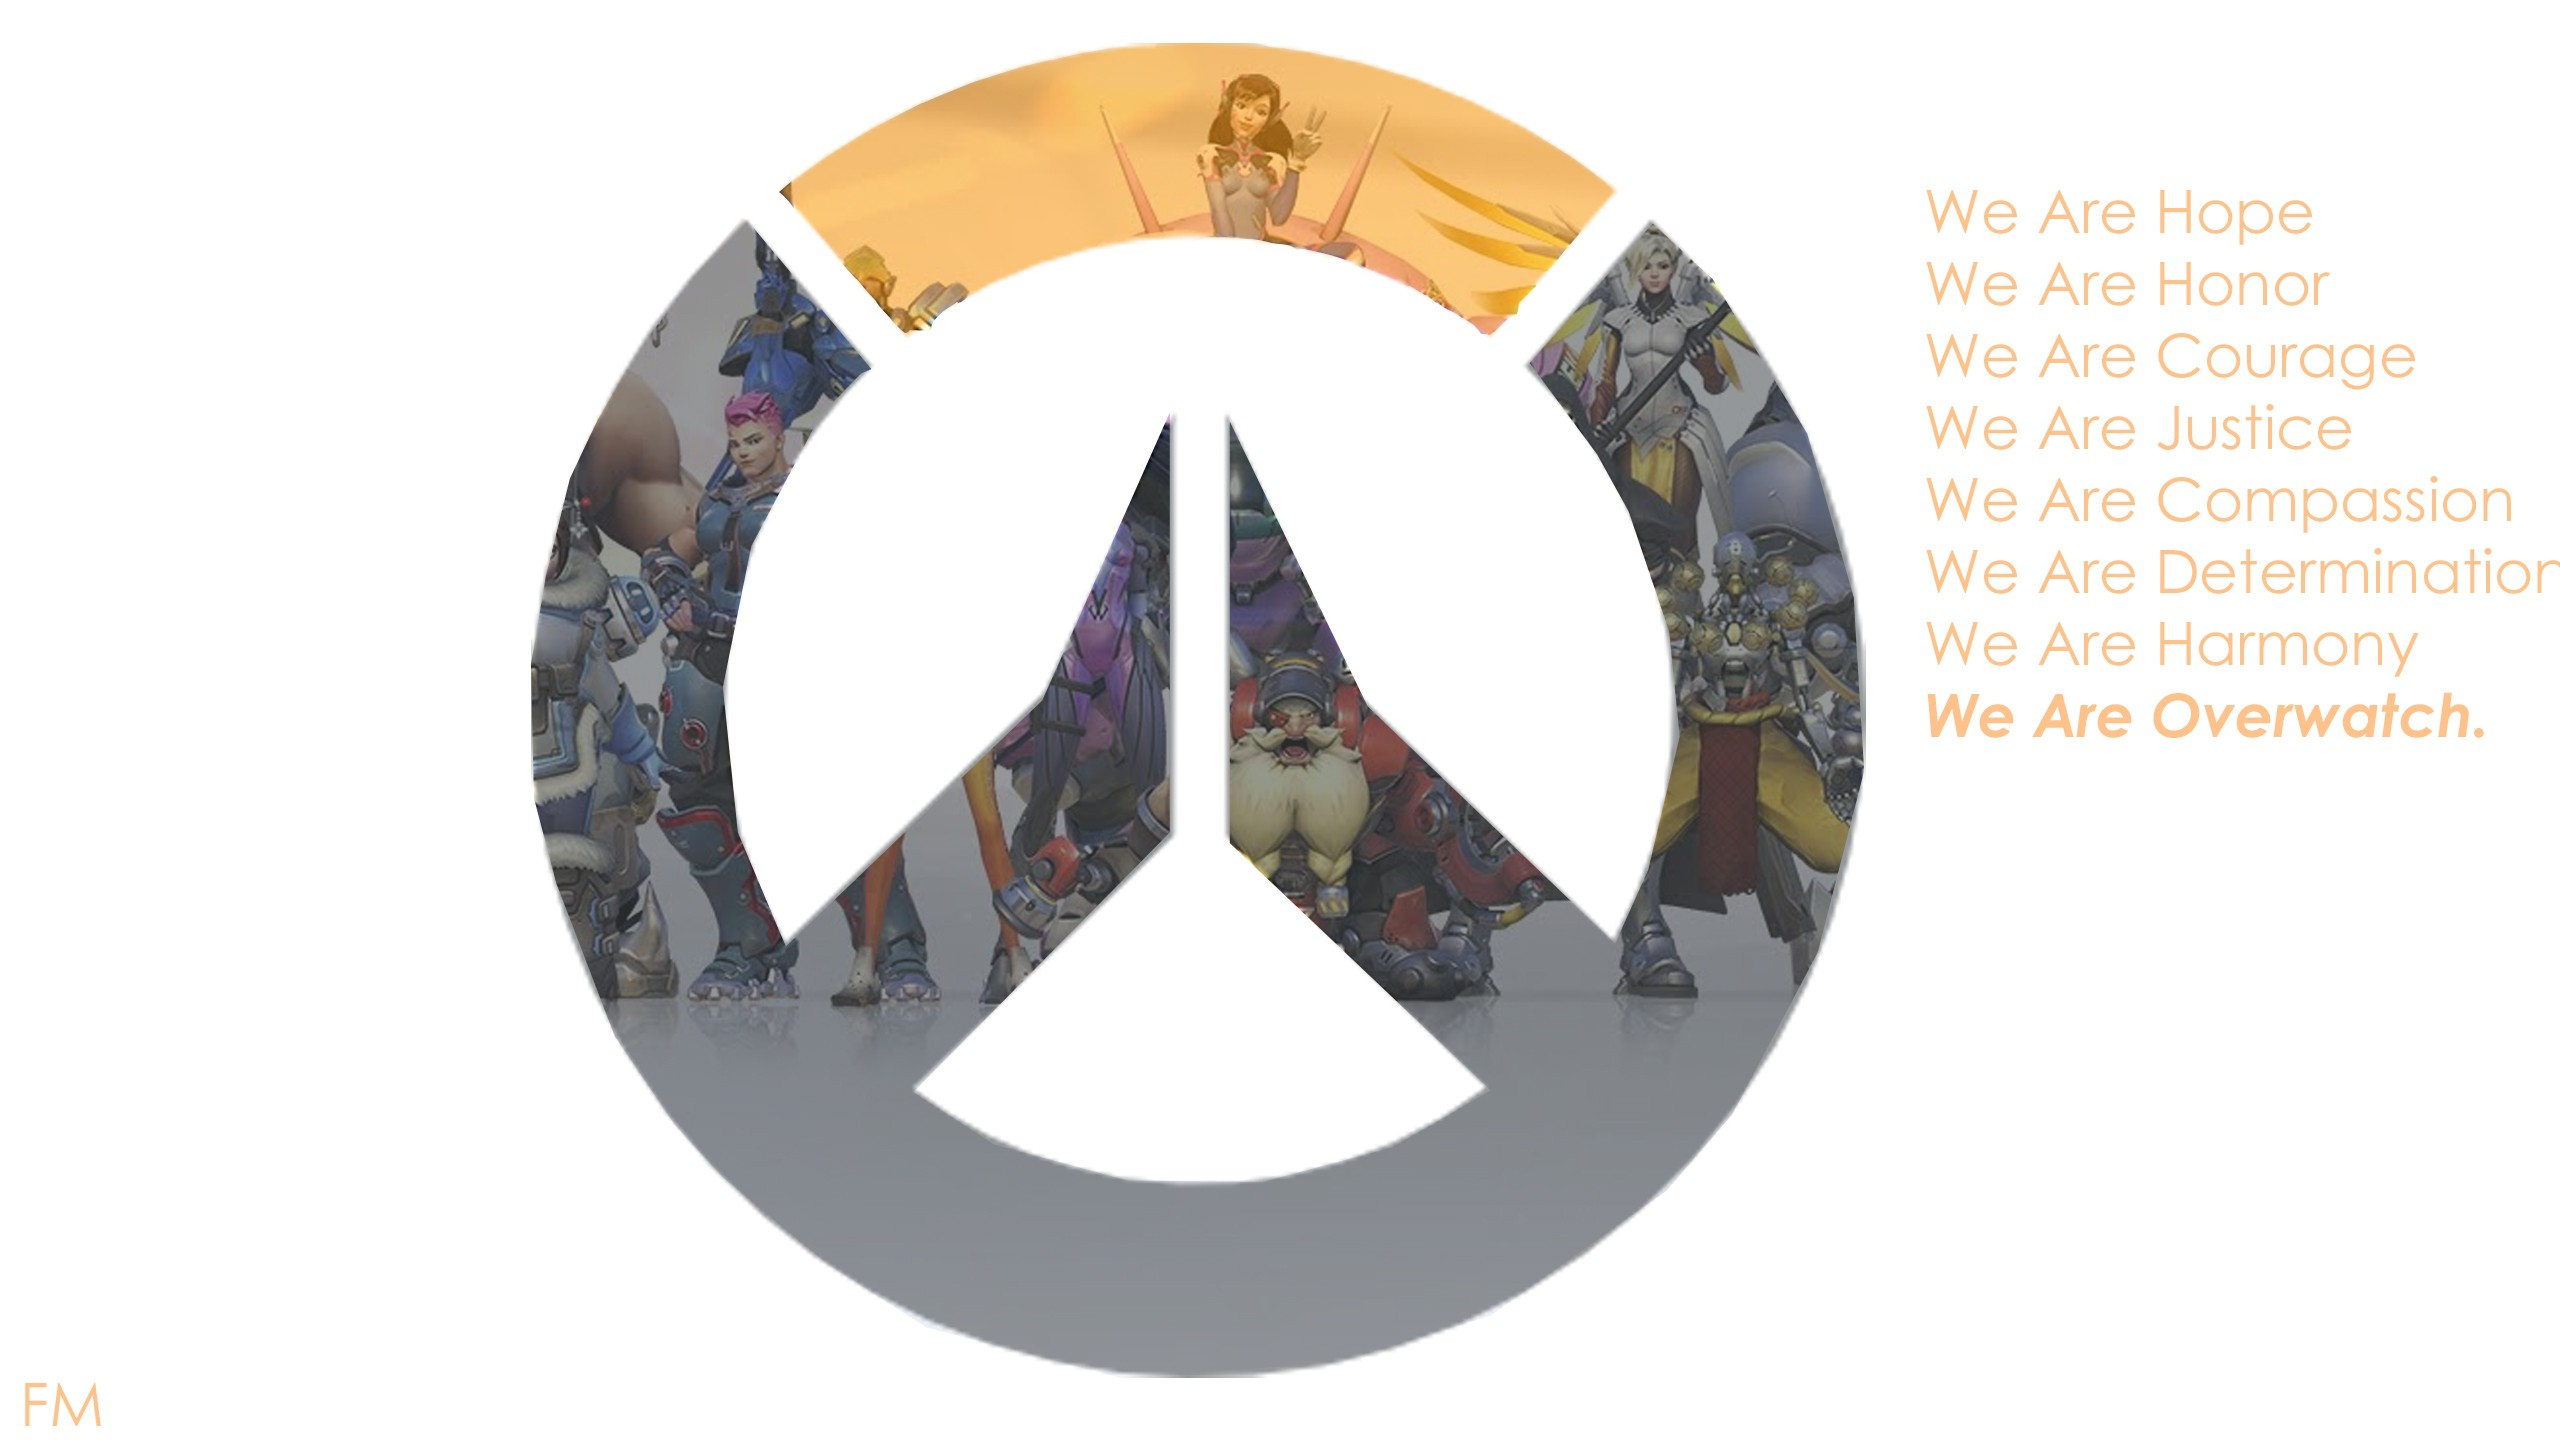 overwatch download for ios